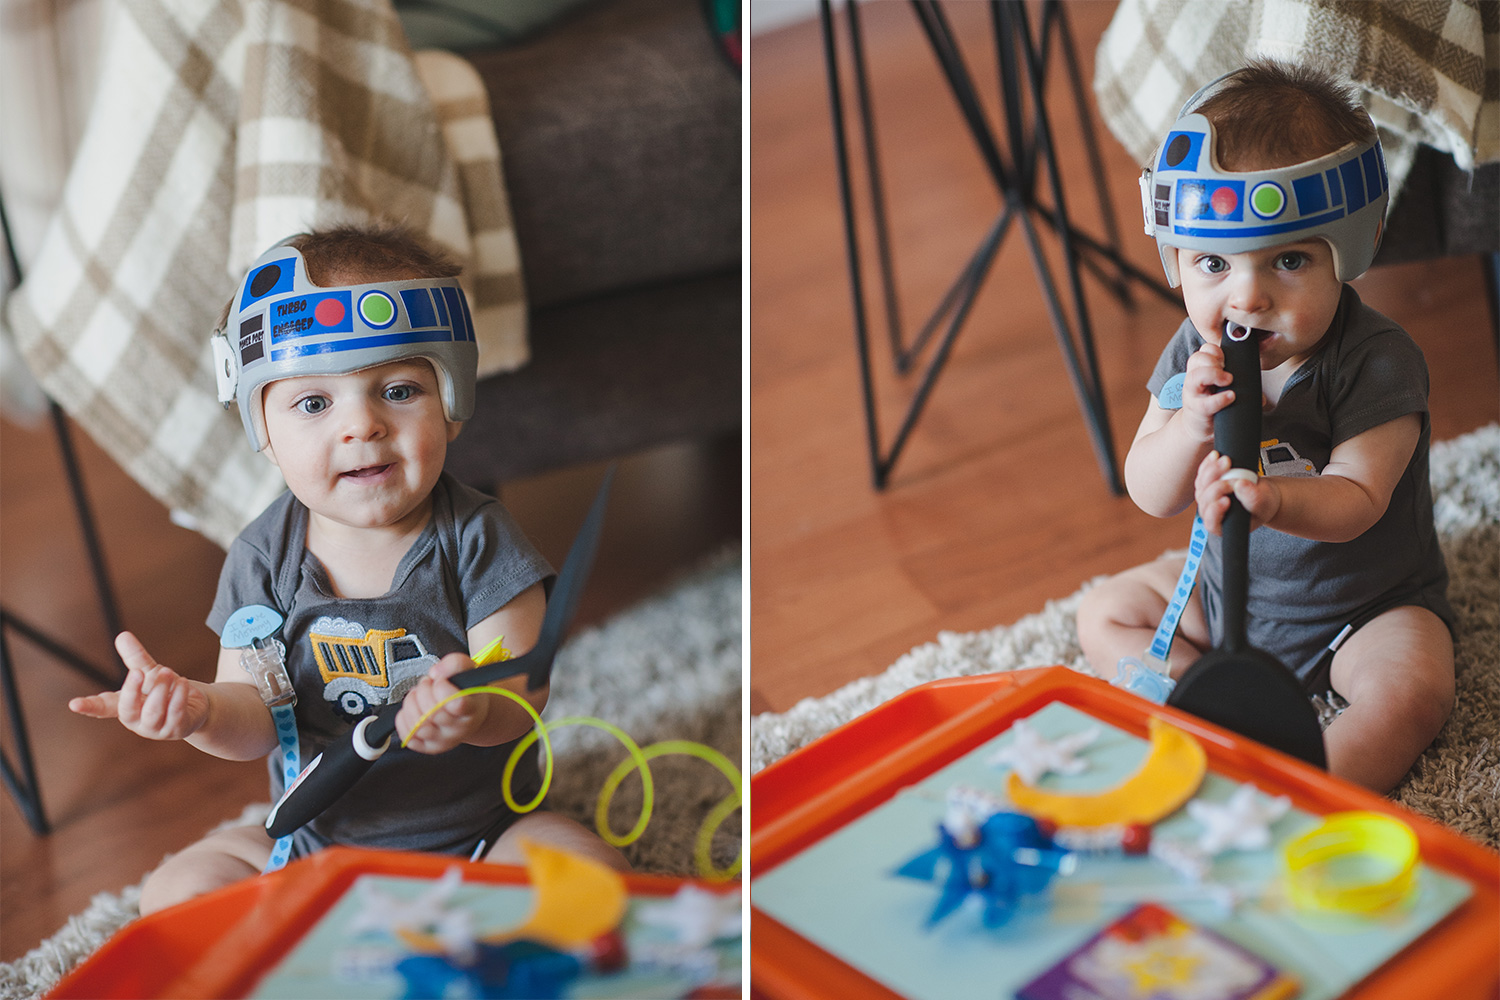 Baby with R2D2 decorated cranial helmet playing with sensory toys